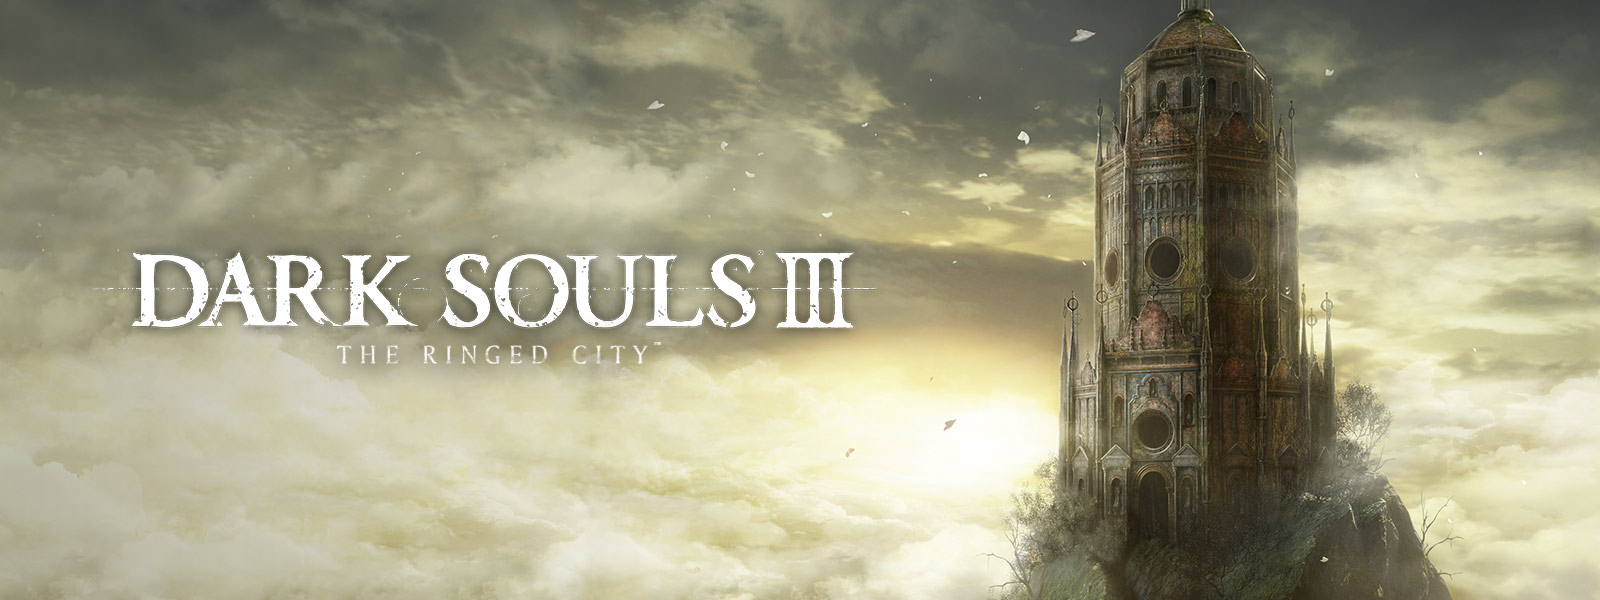 Dark Souls 3 The Ringed City DLC